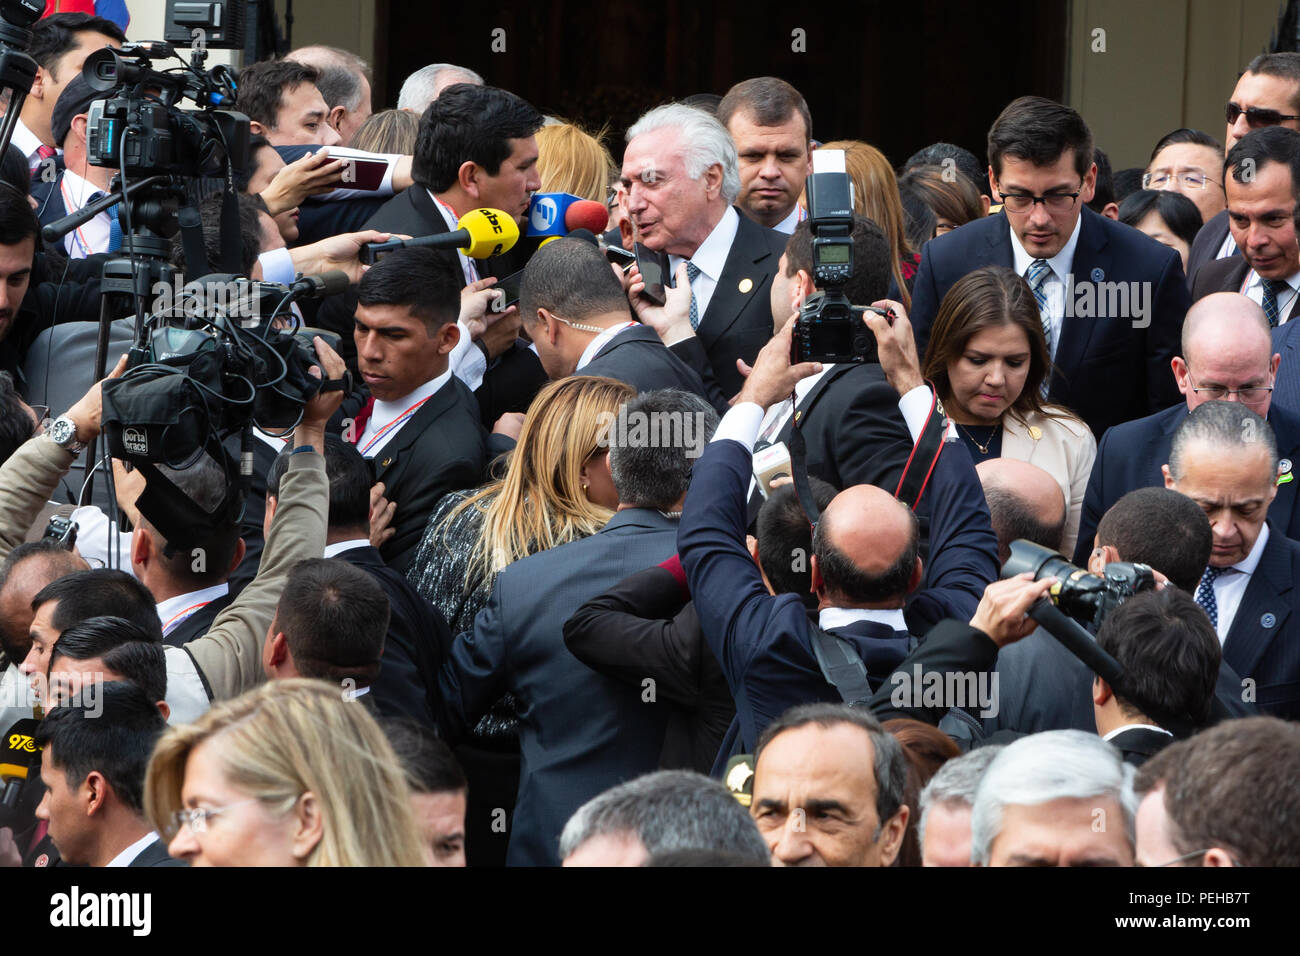 Asuncion, Paraguay. 15th Aug, 2018. Brazilian President Michel Temer speaks to the media as he leaves the Metropolitan Cathedral of Asuncion after attending a Te Deum service following the inauguration ceremony of Paraguay's new President Mario Abdo Benitez in Asuncion, Paraguay. Credit: Andre M. Chang/ARDUOPRESS/Alamy Live News Stock Photo